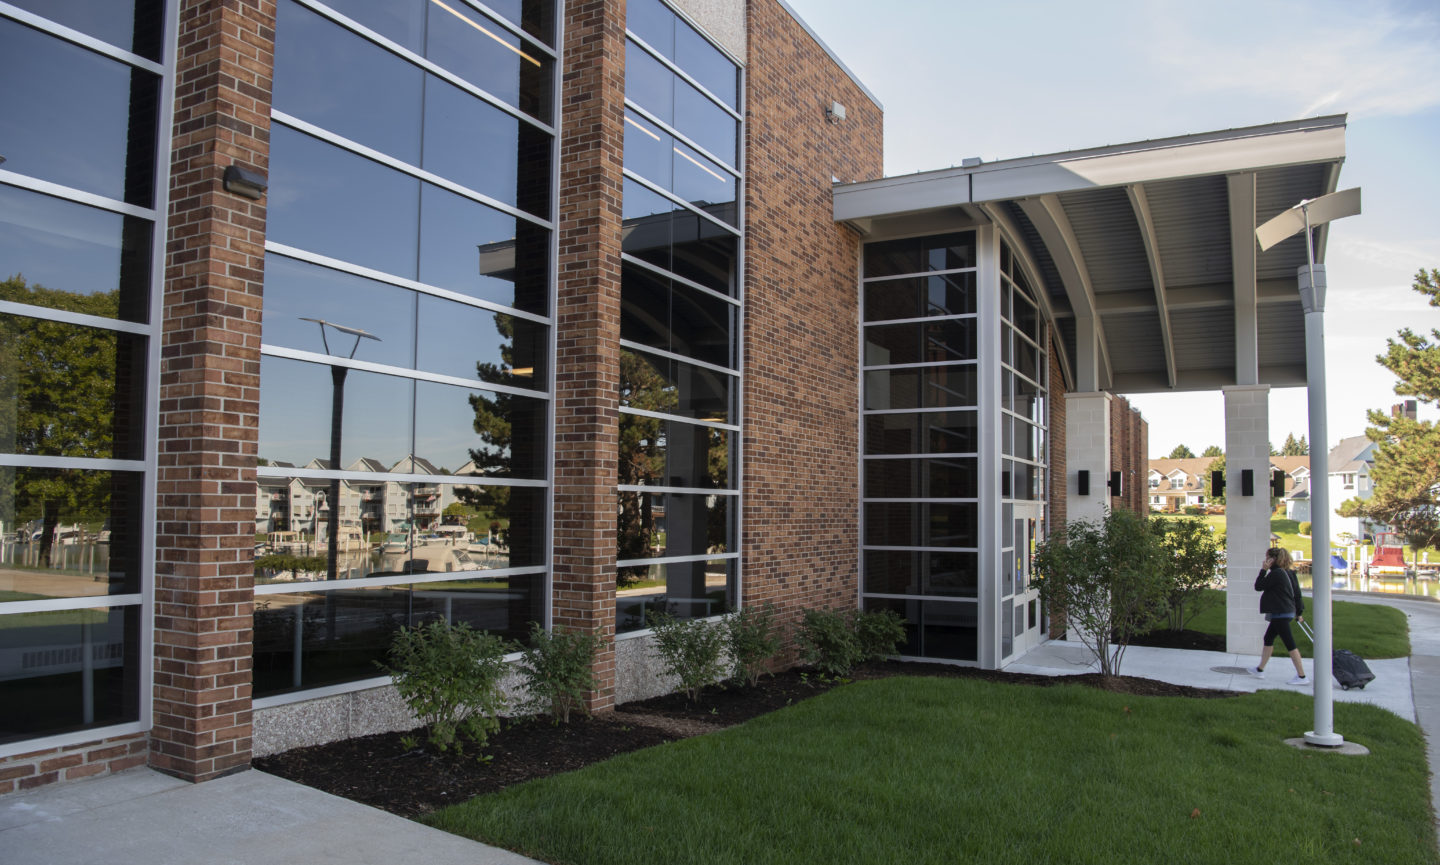 Photo of front of newly renovated Health Sciences Building.